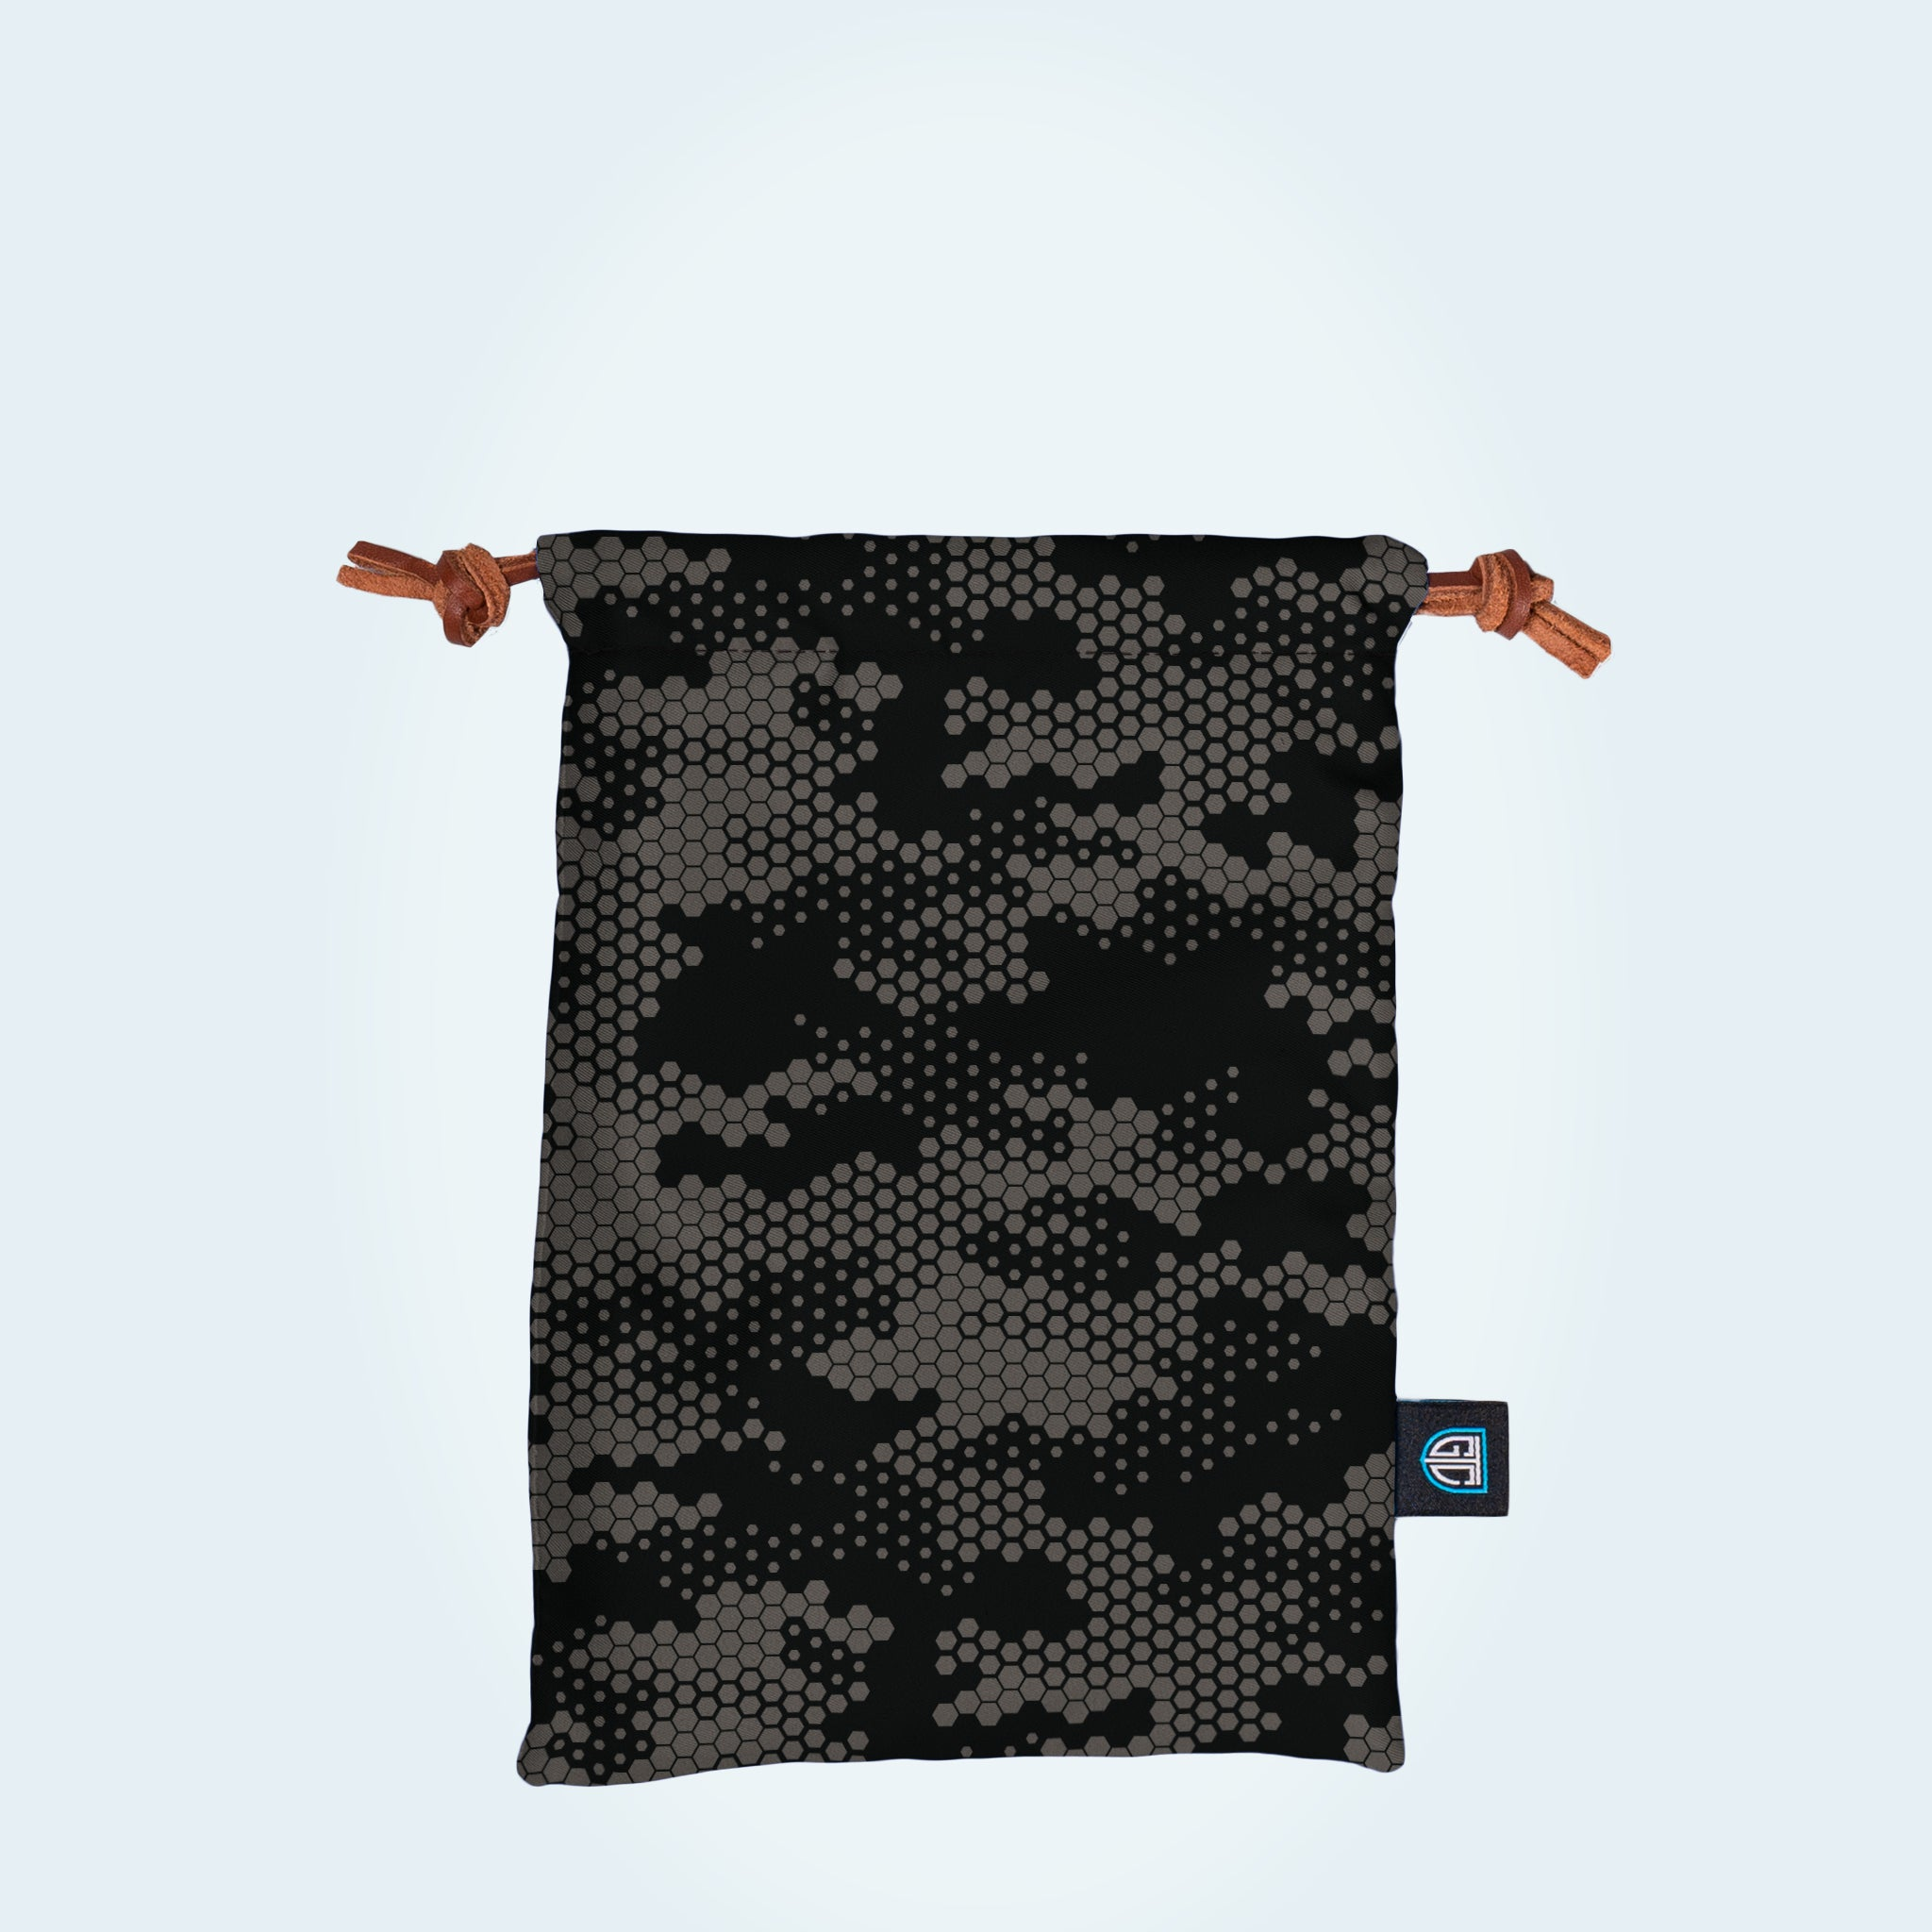 Urban Camo Accessory Bag - personalised golf clothing, golf teamwear, Head Covers, Towels & accessories online